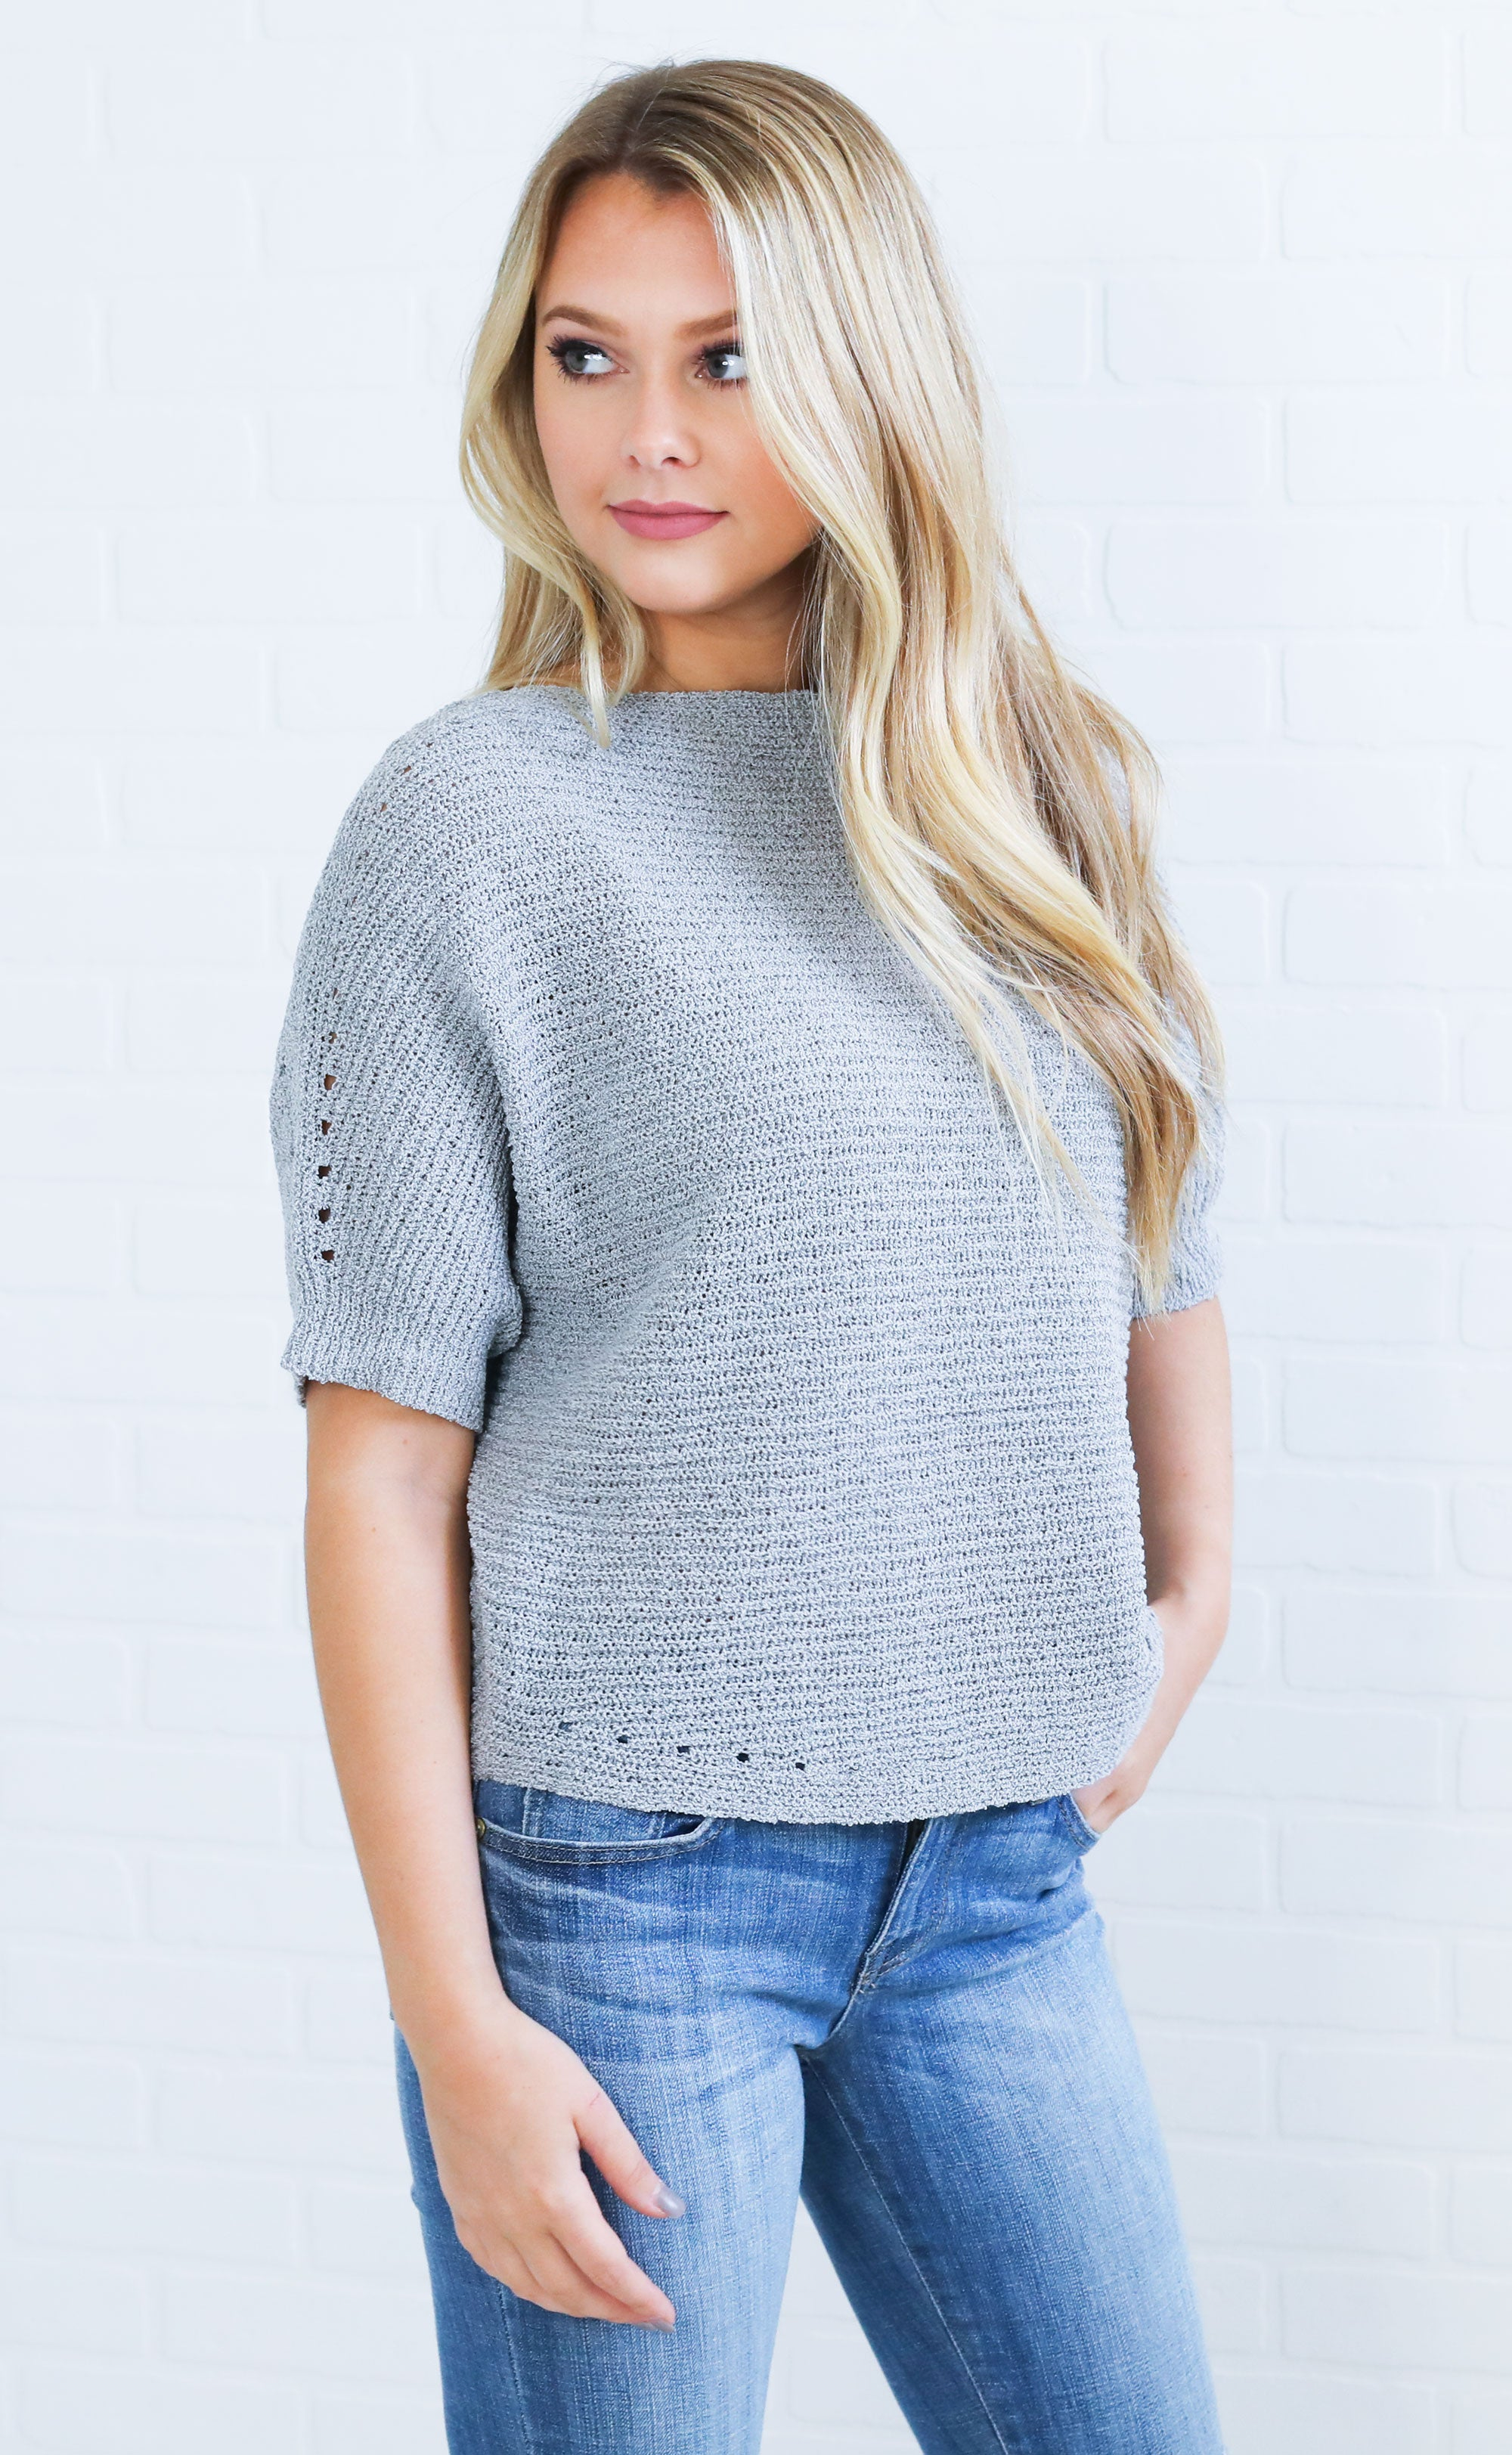 d9a4c65edb4 summer nights knit sweater - grey – ShopRiffraff.com